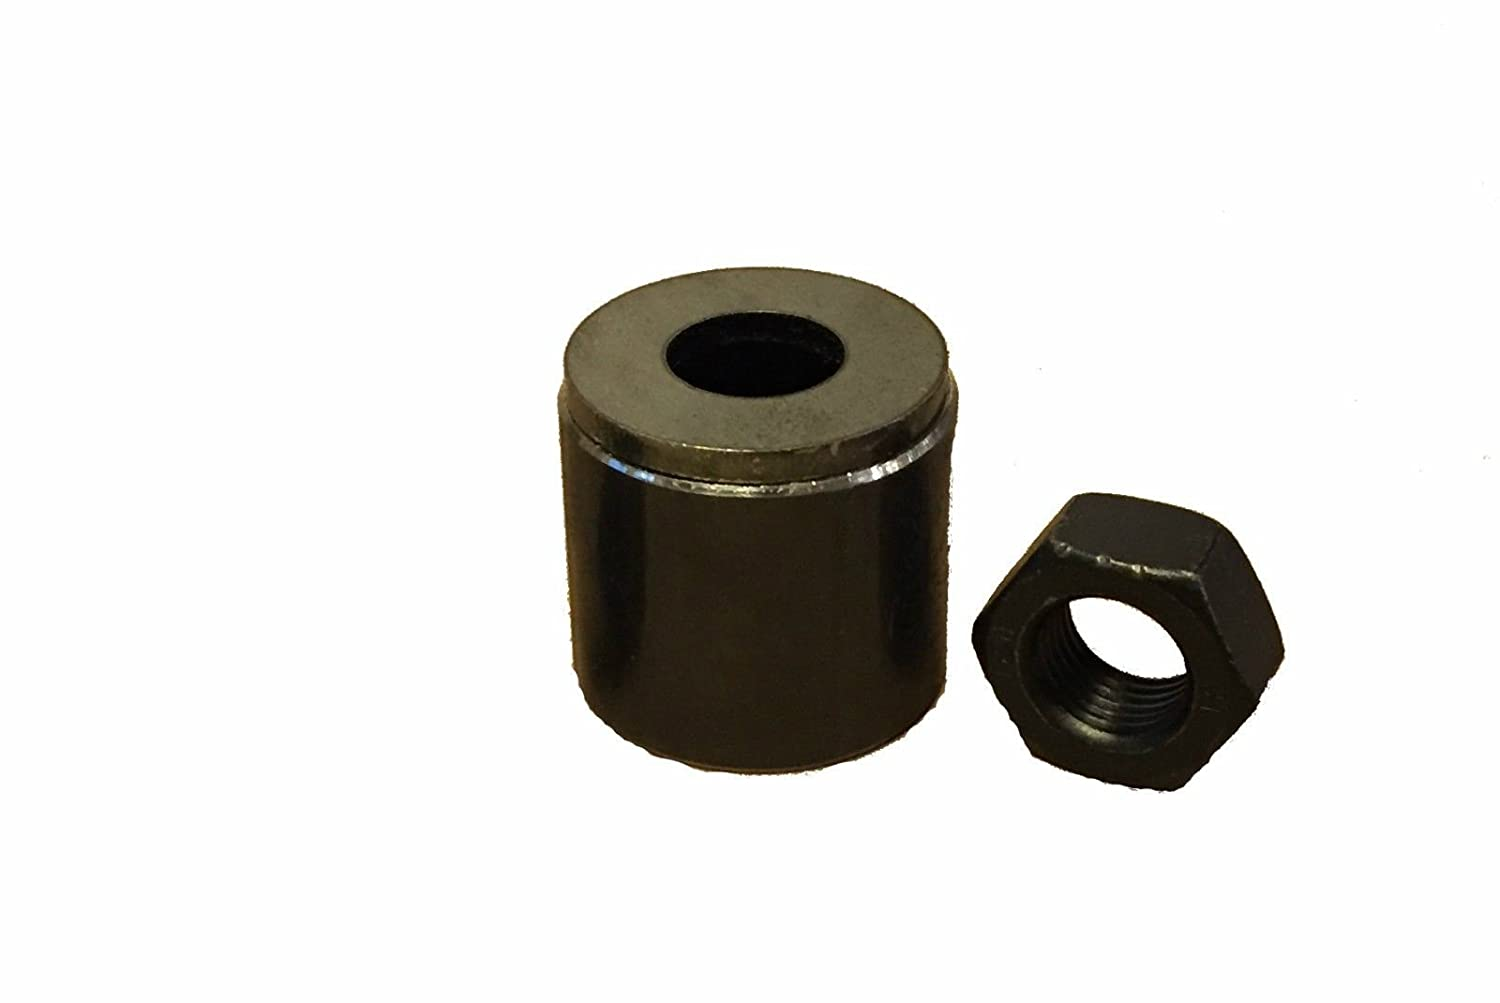 Fuel Injector Puller for Second Gen Dodge Ram Cummins Diesel P-7100 PPump  Engine Removal Tool